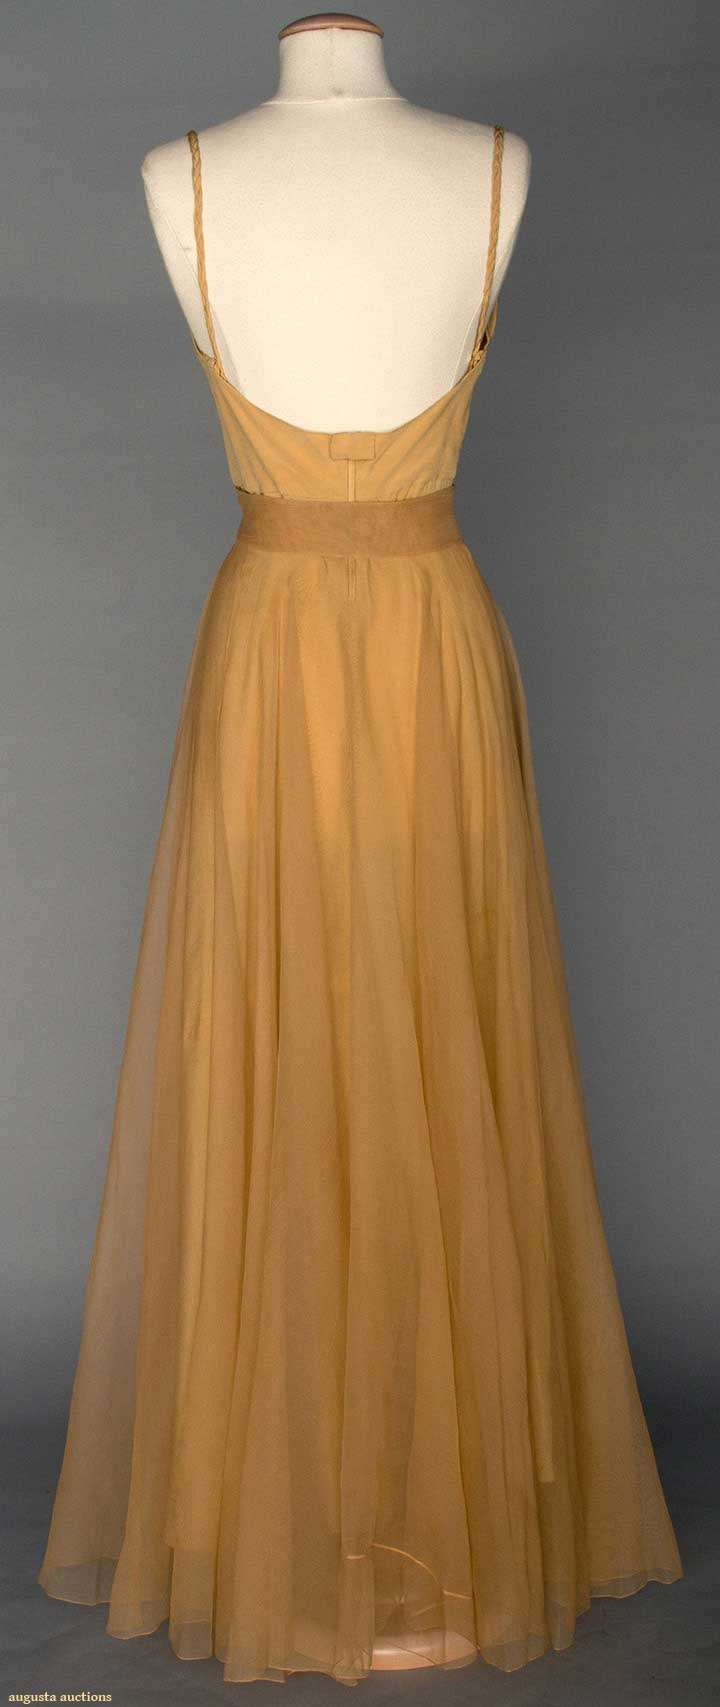 "VALENTINA SILK EVENING SKIRT, 1930s Unlabeled & bought at Valentina Schlee's personal estate sale #6951 Christie's East, 1990: tan silk illusion long open-front skirt w/ CF laced waistband, full length tan silk slip w/ braided narrow straps, W 26"", L 45"""